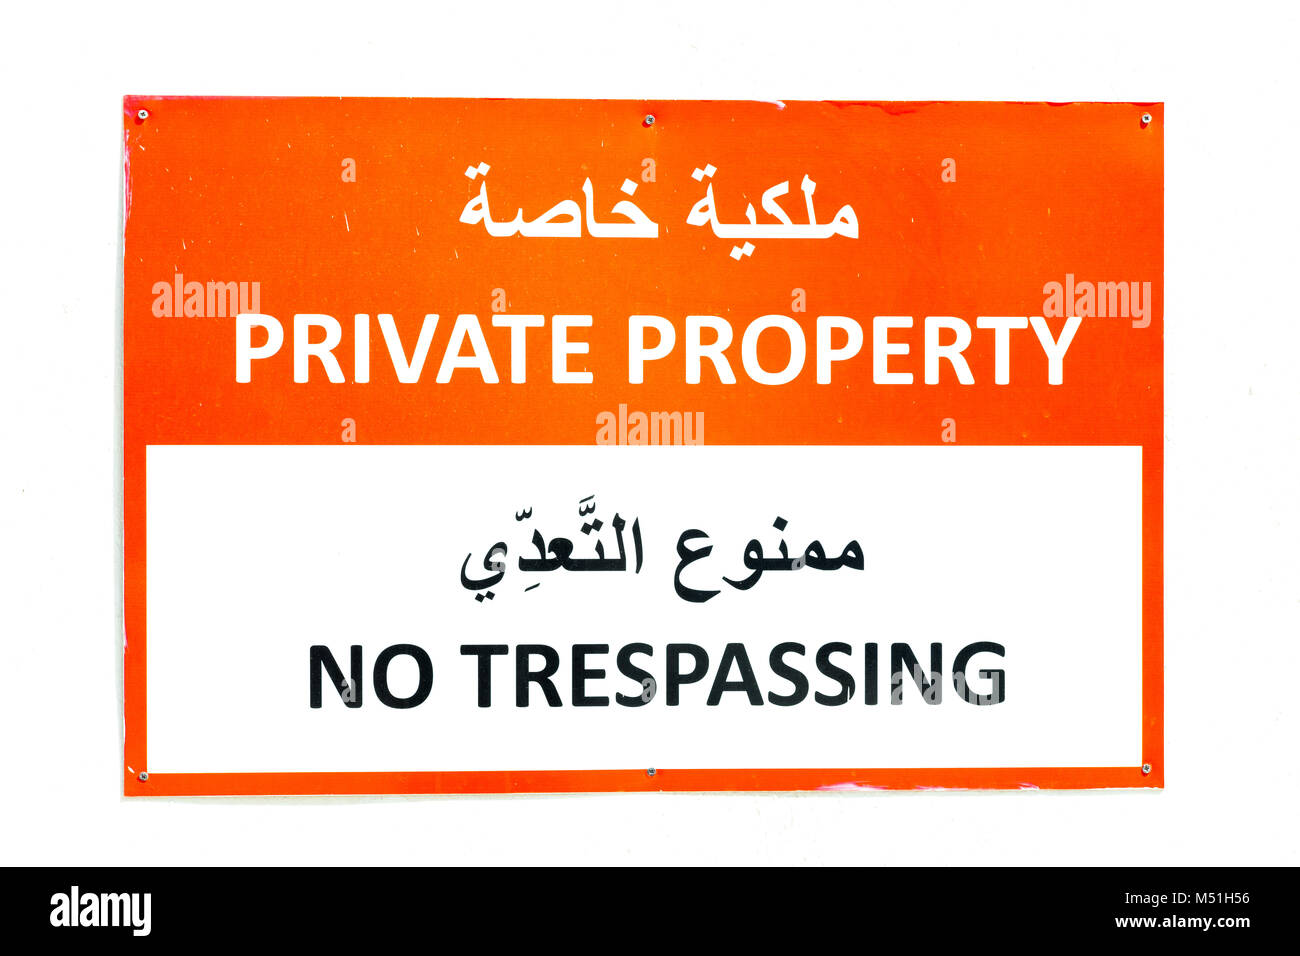 Private Property, No Trespassing sign both in Arabic and English - Stock Image